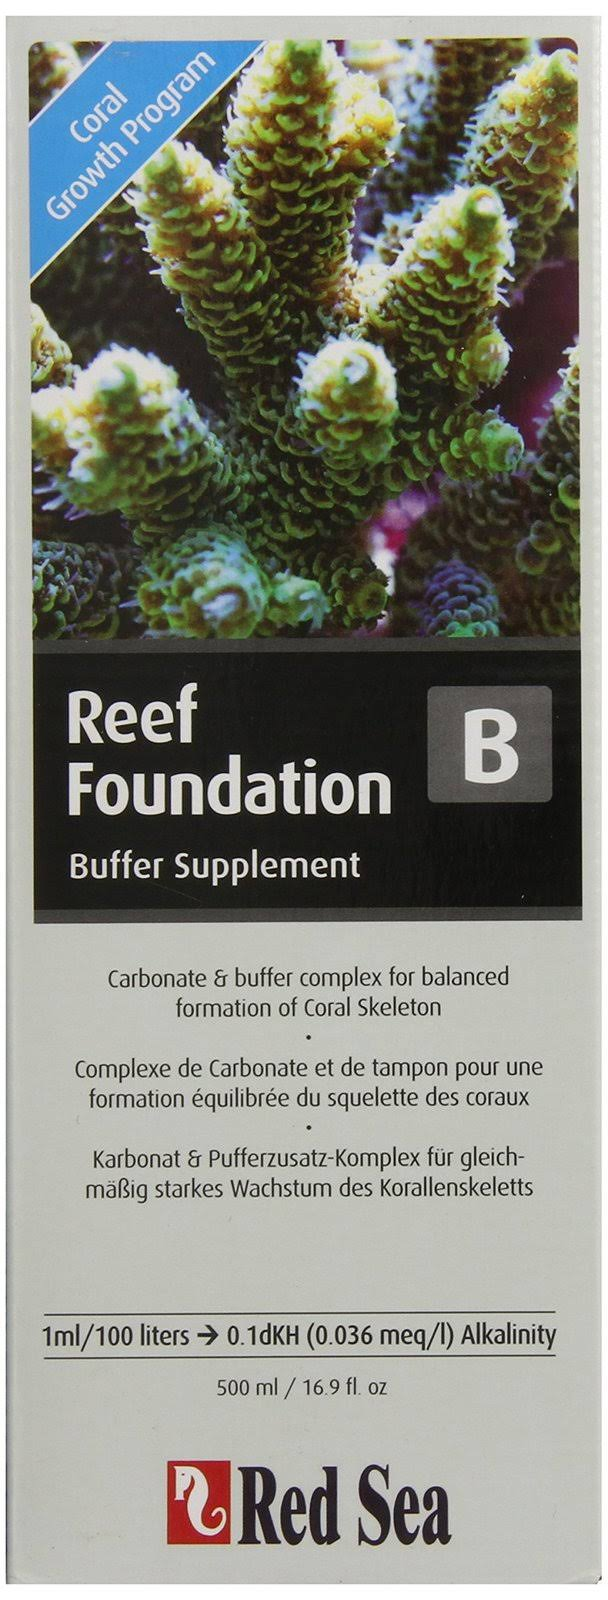 Red Sea Reef Foundation Supplement B